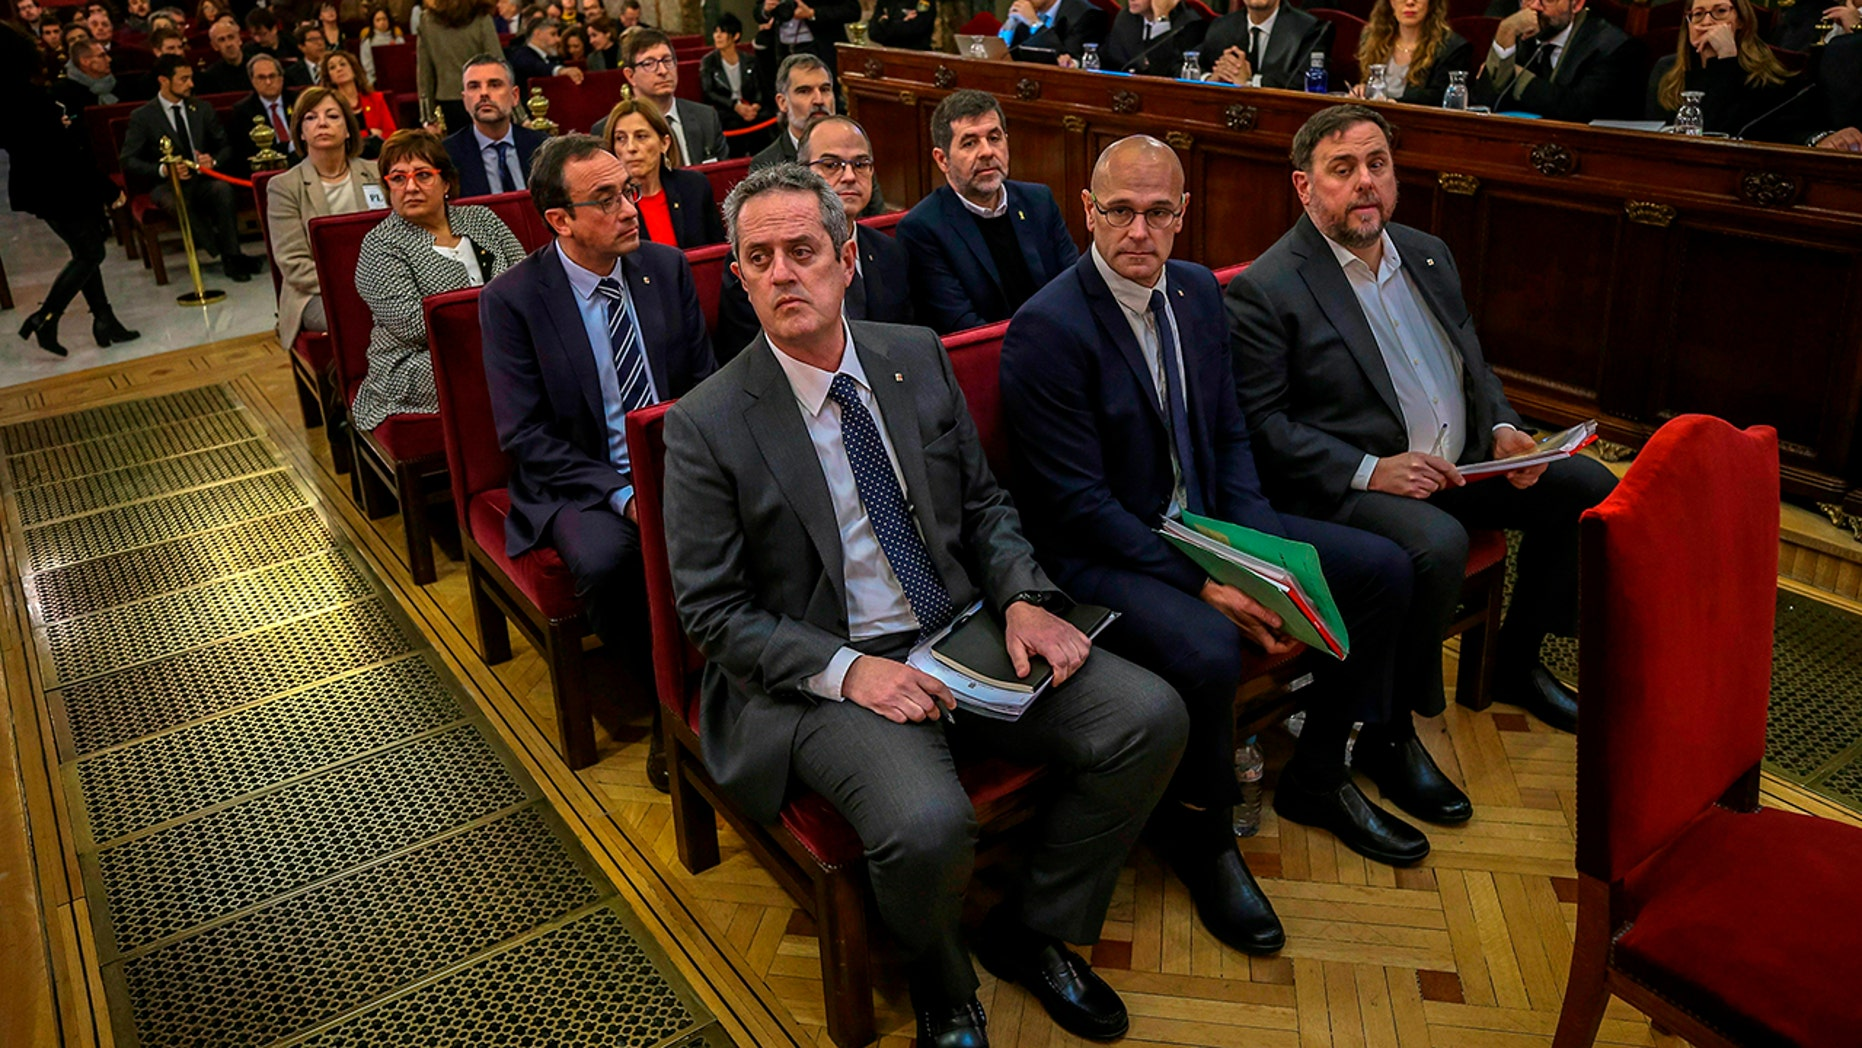 Front row from left, Joaquim Form, Raul Romeva, Oriol Junquera, second row from left, Josep Rull, Jordi Turull, Jordi Sanchez, third row from left, Dolors Bassa, Carmen Forcadell, Jordi Cuixart, back row from left, Meritxell Borras, Santiago Vila, and Carles Mundo during the trial at the Spanish Supreme Court in Madrid, Tuesday, Feb. 12.